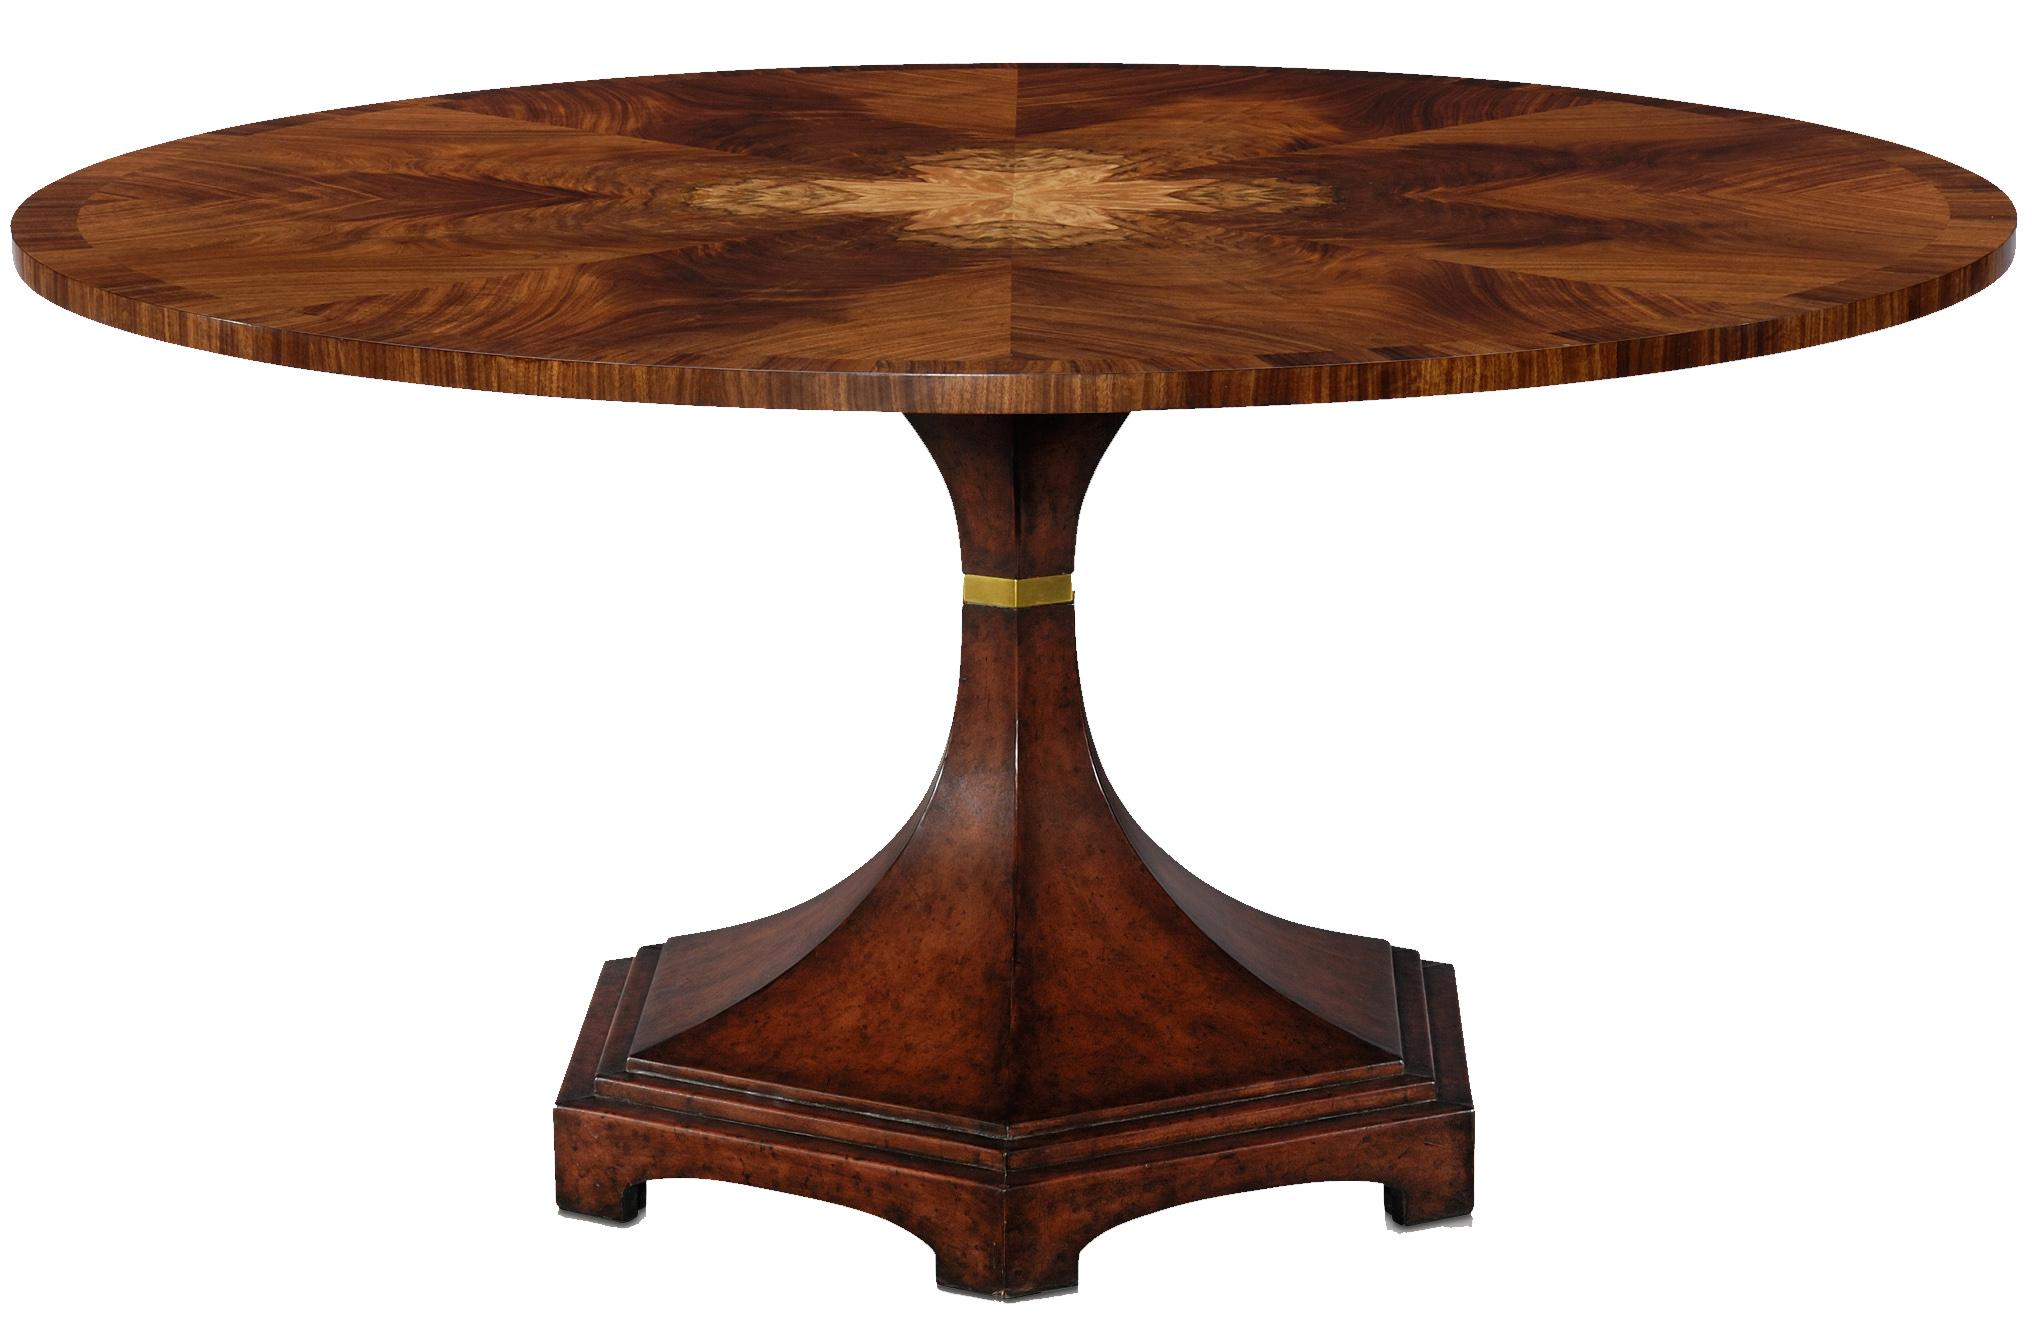 Vanucci Eclectics Centre Table by Theodore Alexander at Baer's Furniture